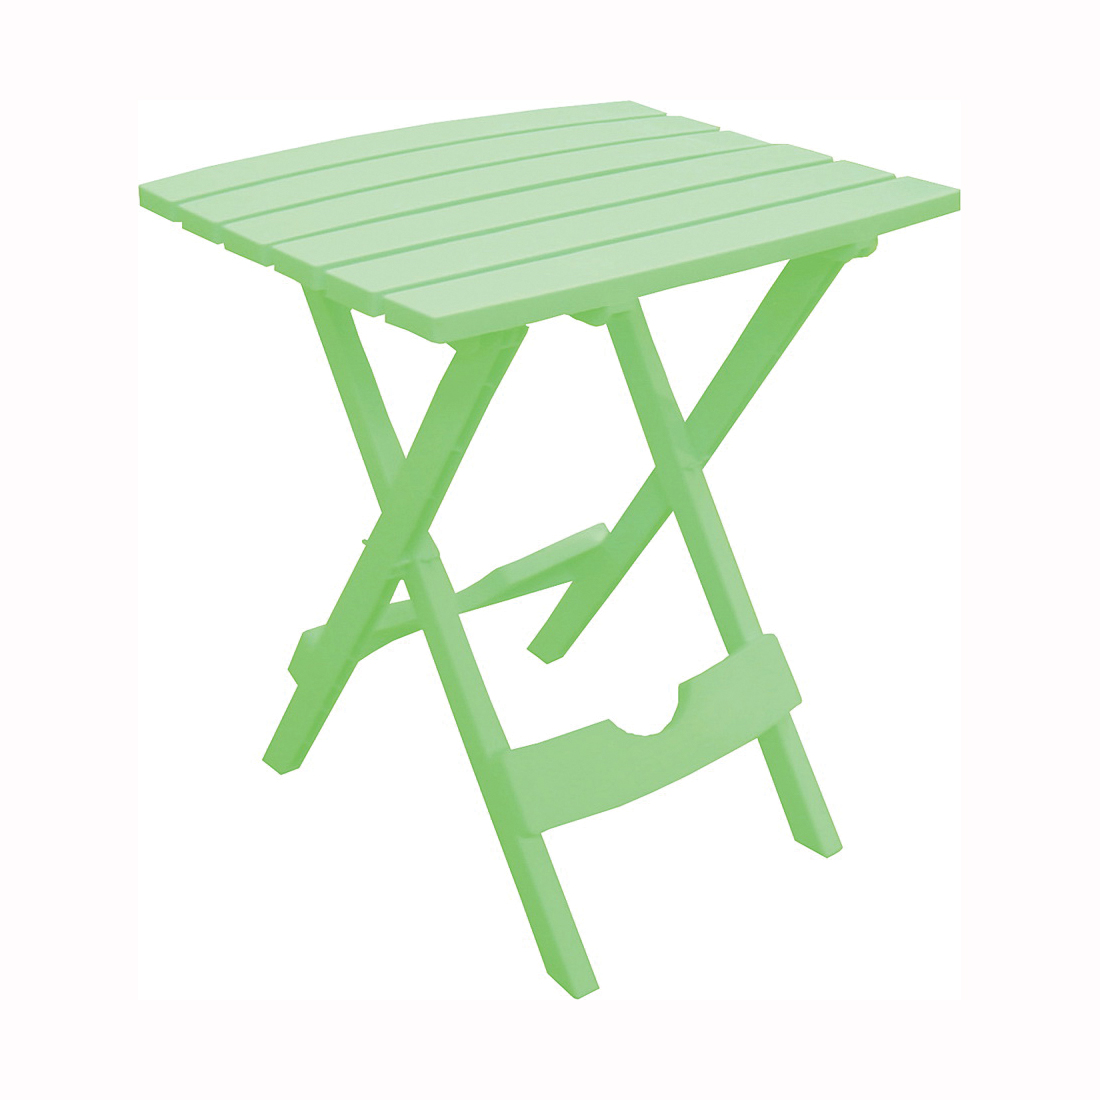 Picture of Adams Quik-Fold 8500-08-3735 Side Table, 15-1/4 in W, 17-3/8 in D, 19-3/4 in H, Resin Frame, Rectangular Table